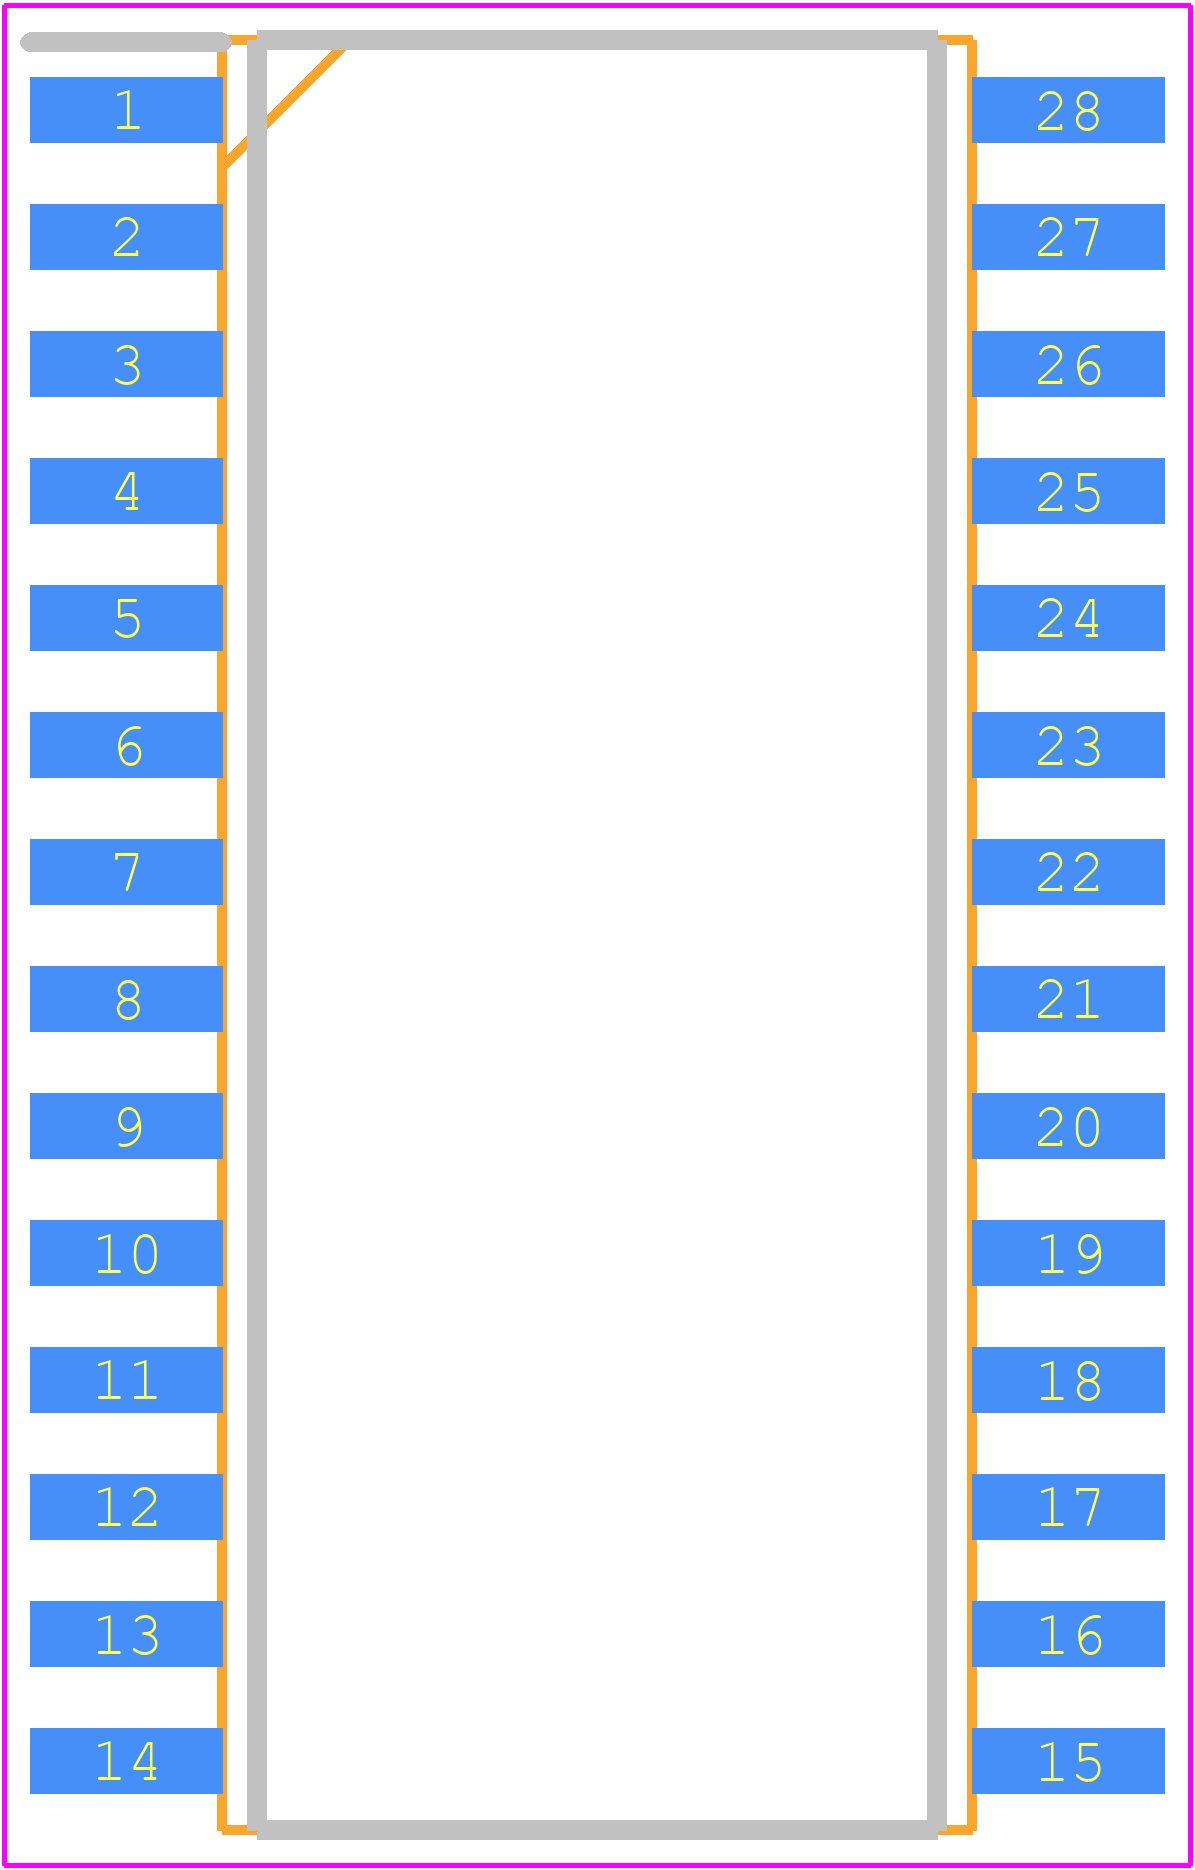 IR2132SPbF - Infineon PCB footprint - Small Outline Packages - 28-Lead SOIC (wide body)